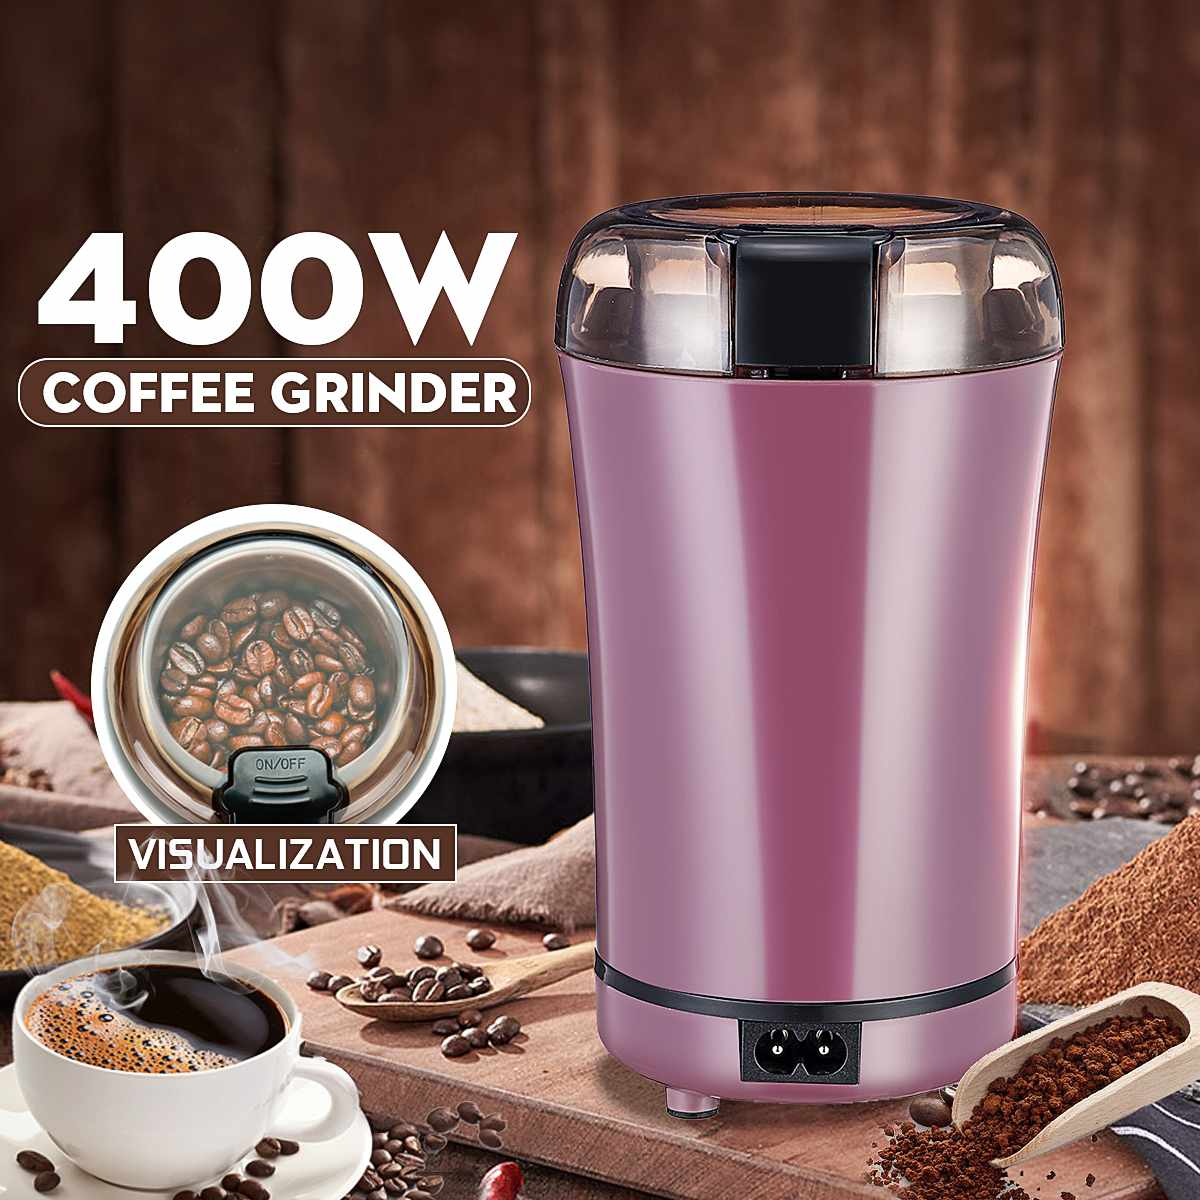 400W Electric Coffee Grinder Espresso Mill Kitchen Salt Pepper Grinder Beans Spices Nuts Seed Coffee Grinding Crocus Machine